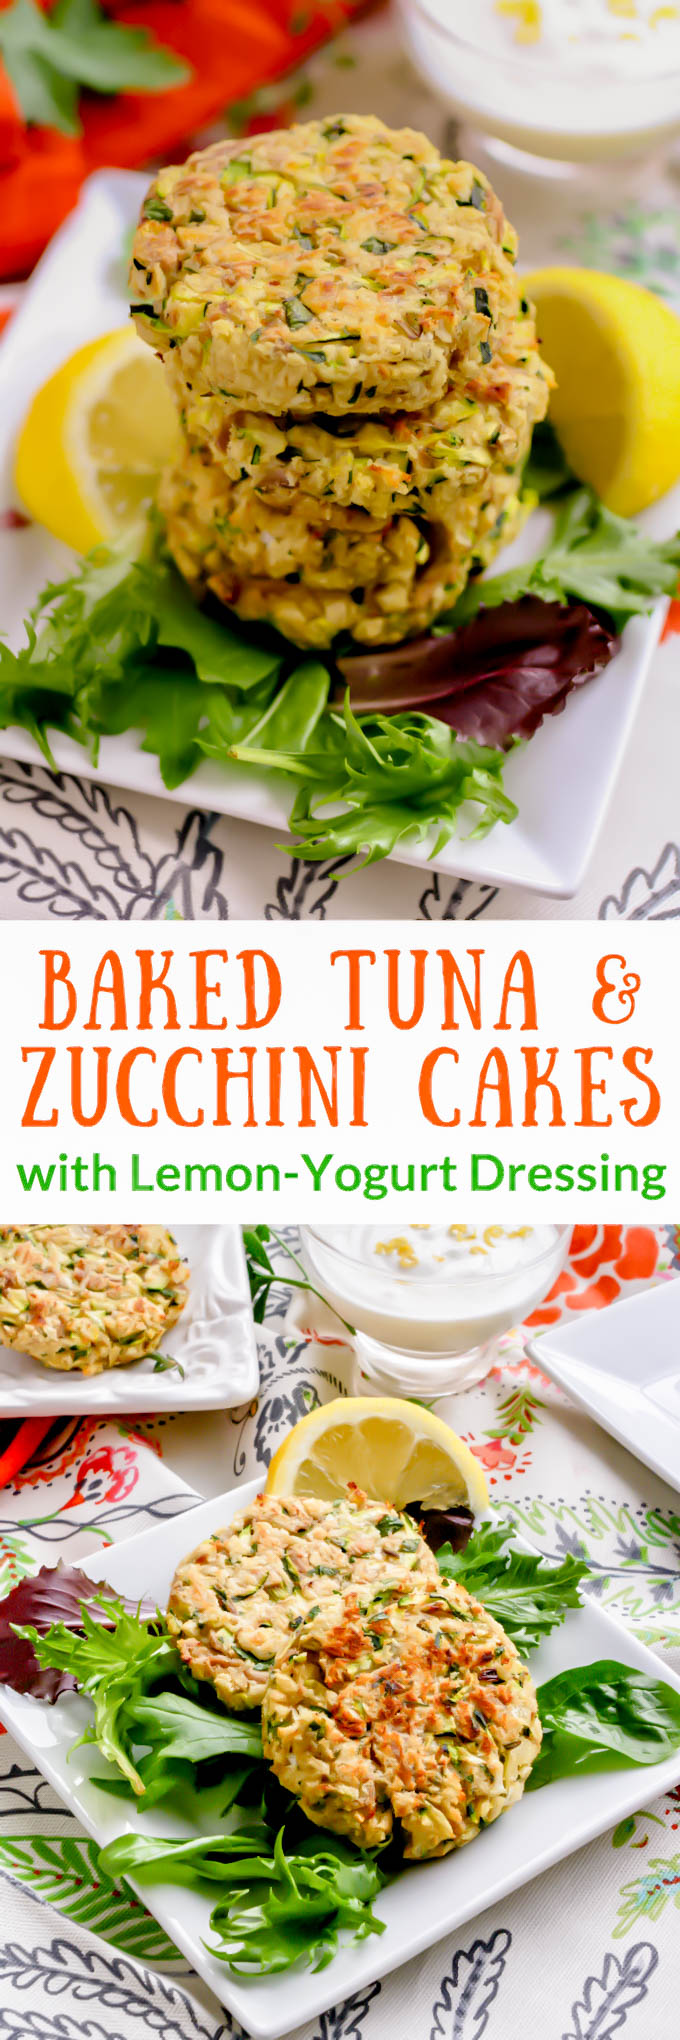 Baked Tuna and Zucchini Cakes with Lemon-Yogurt Dressing are perfect for a snack or as part of a lighter meal. You'll love how fresh Baked Tuna and Zucchini Cakes with Lemon-Yogurt Dressing make an ideal springtime snack. Enjoy Baked Tuna and Zucchini Cakes with Lemon-Yogurt Dressing are, and they're easy to make, too!